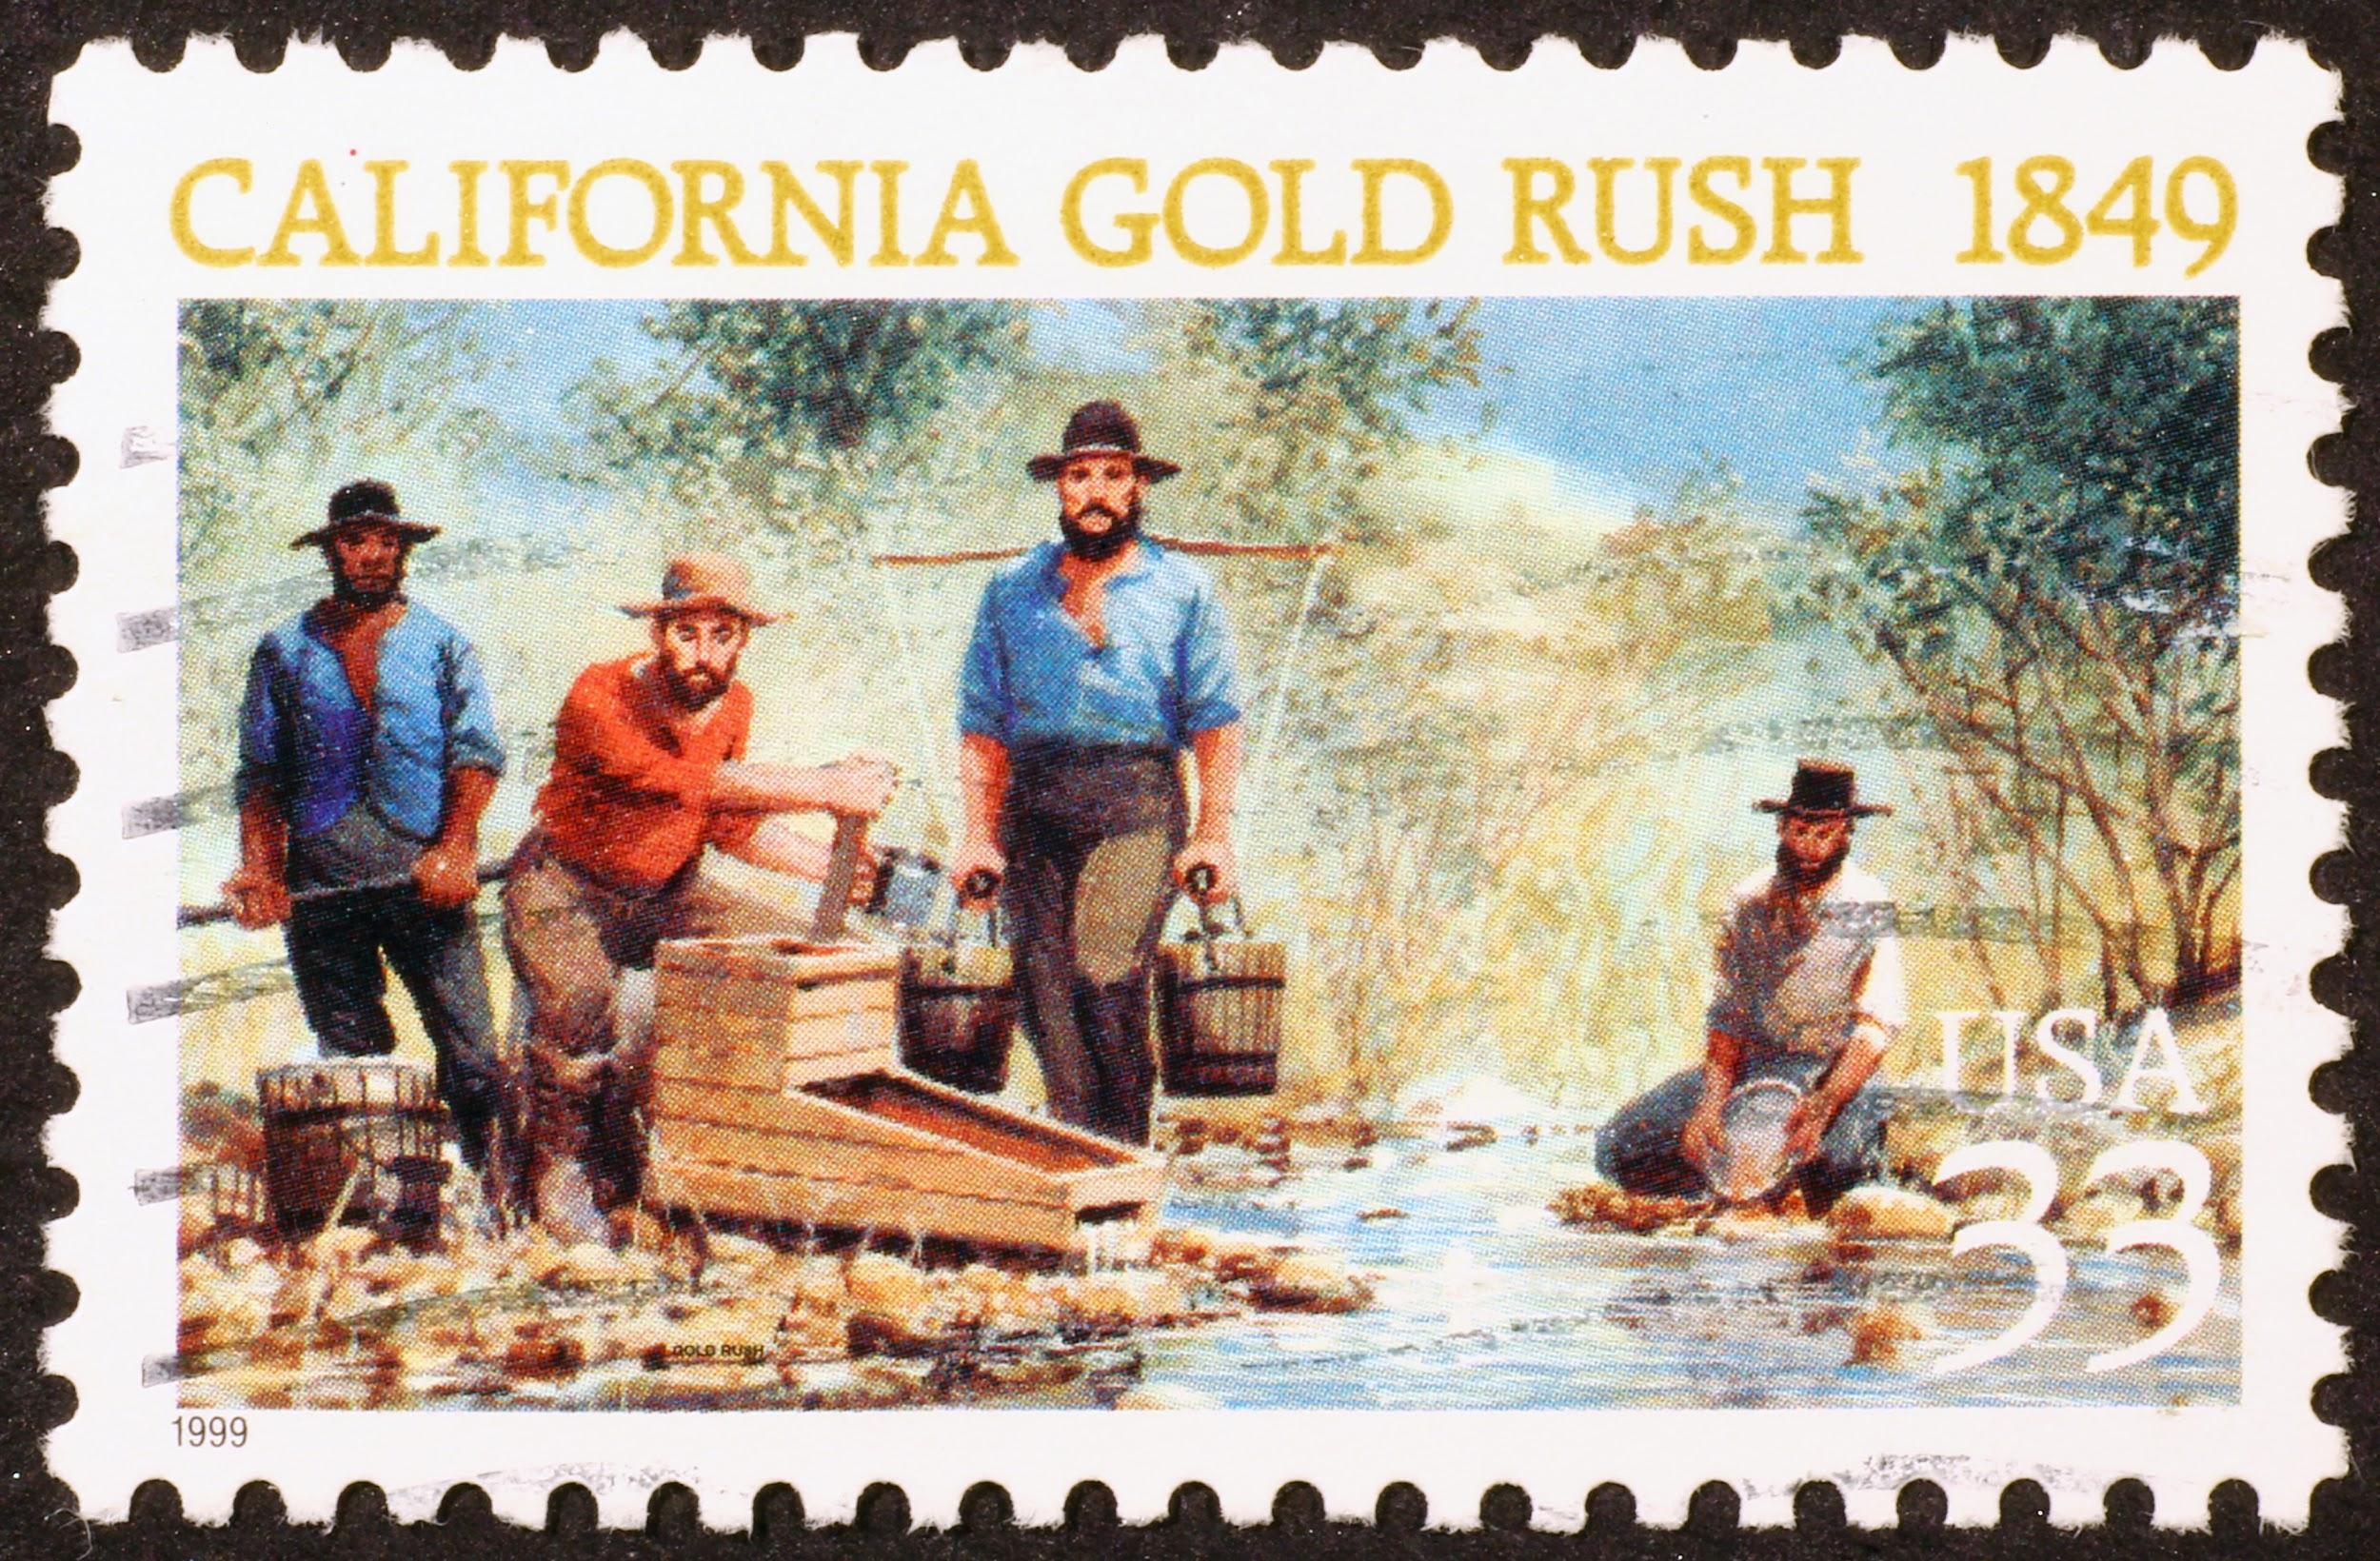 A stamp celebrating the California Gold Rush of 1849.